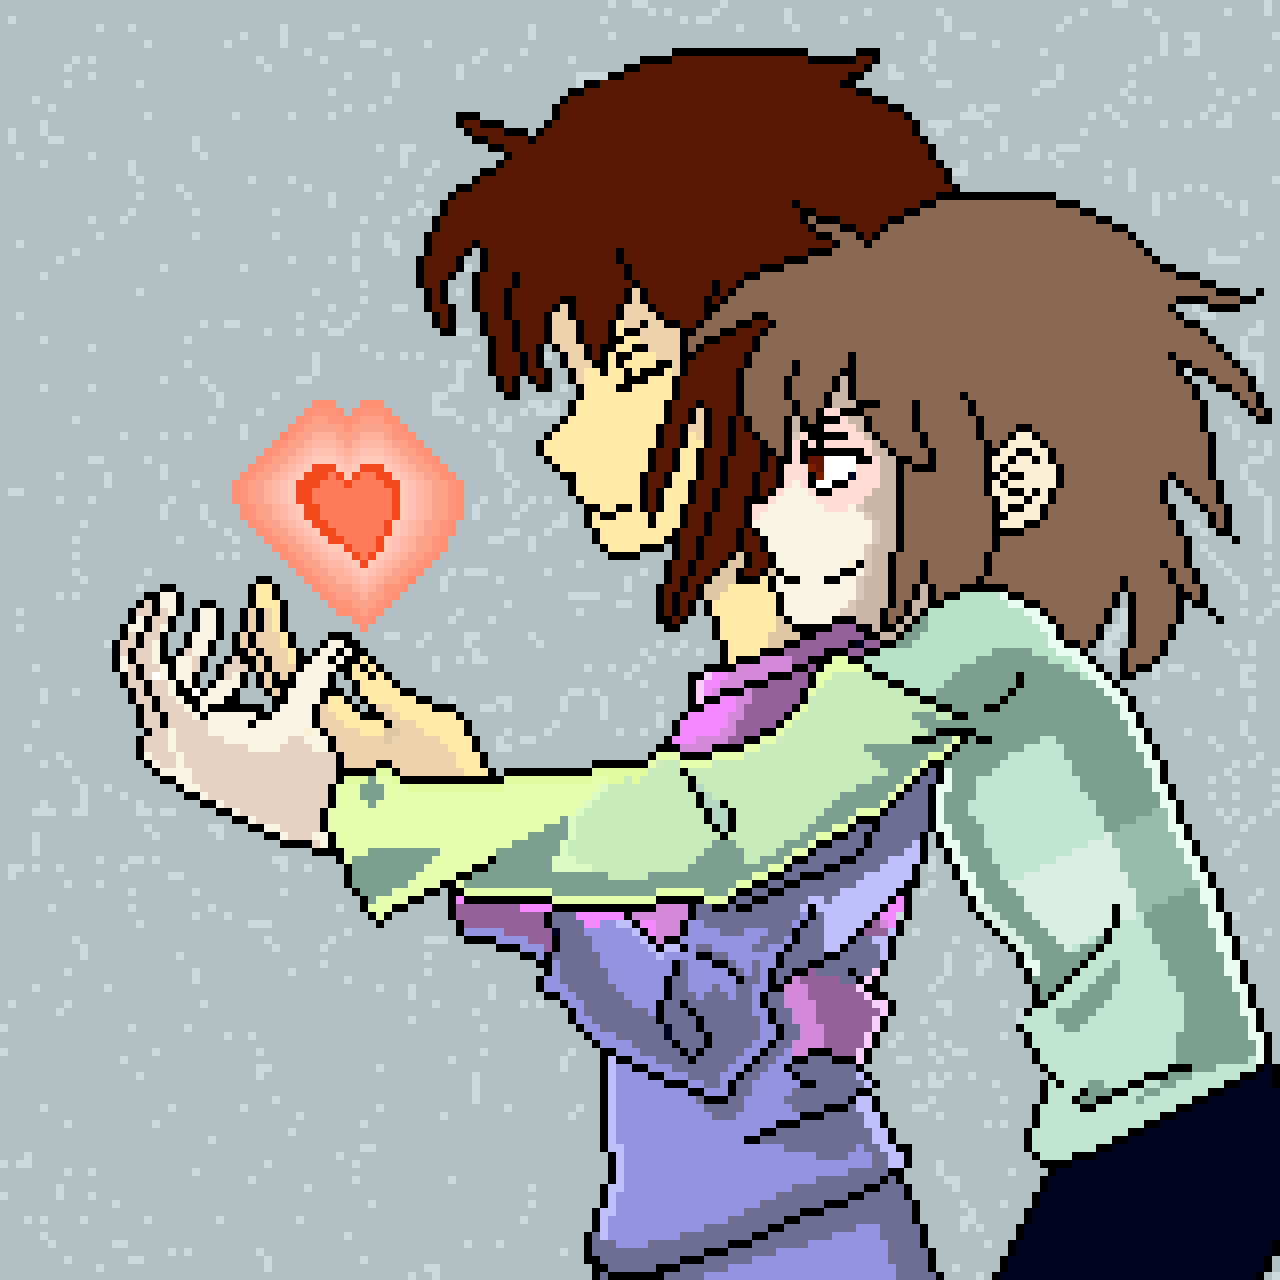 Chara and Frisk (from Undertale)